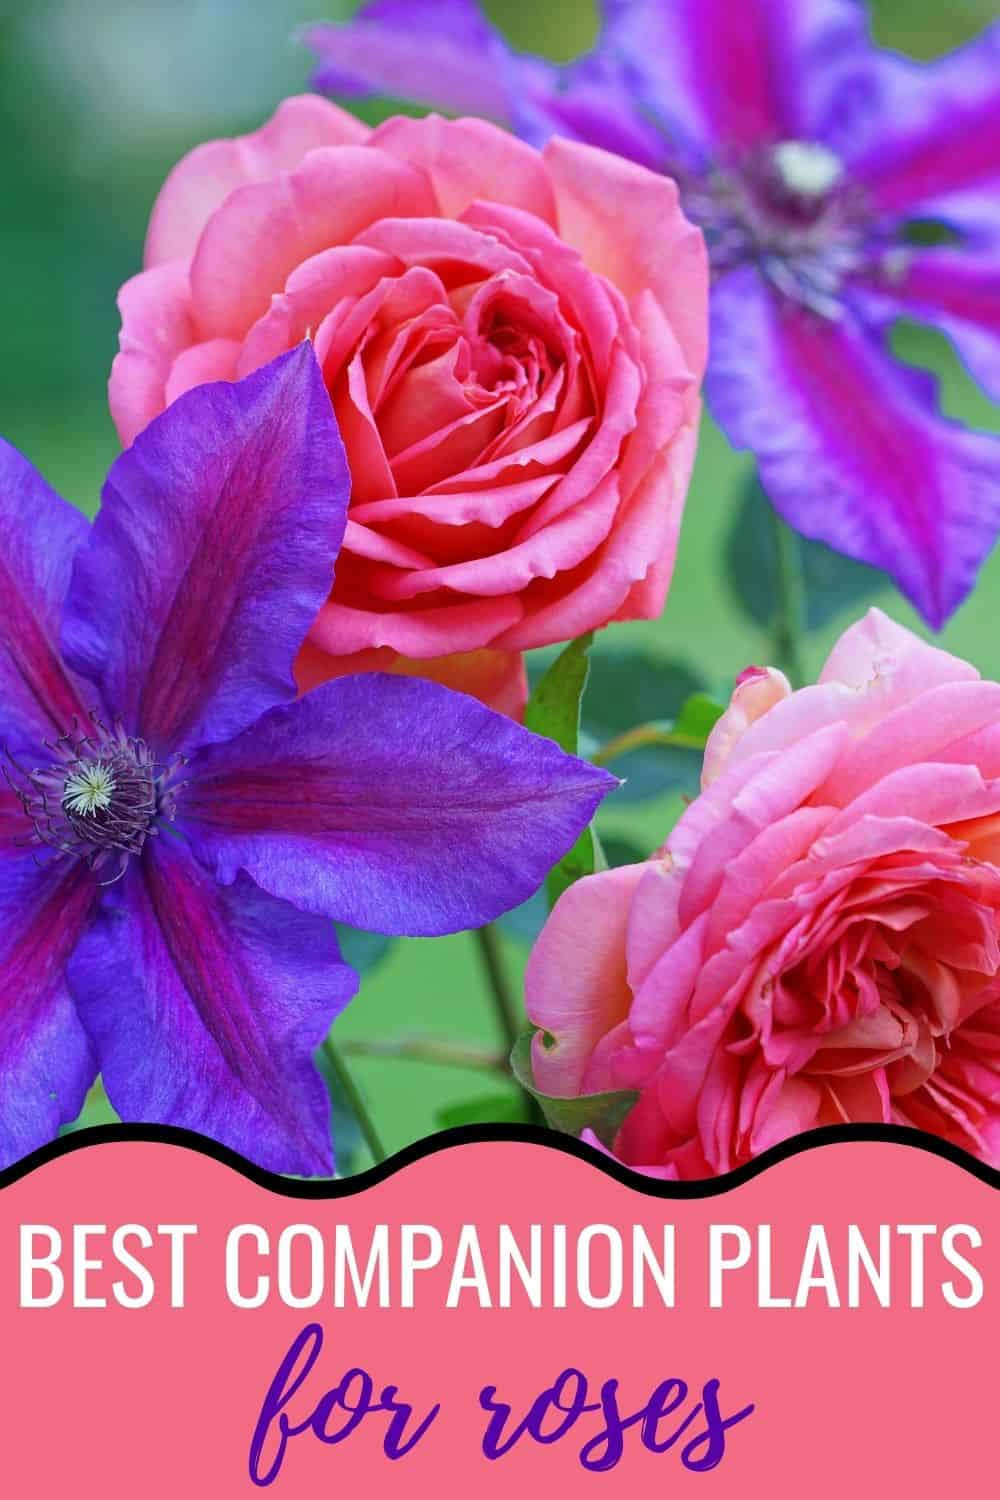 Best companion plants for roses